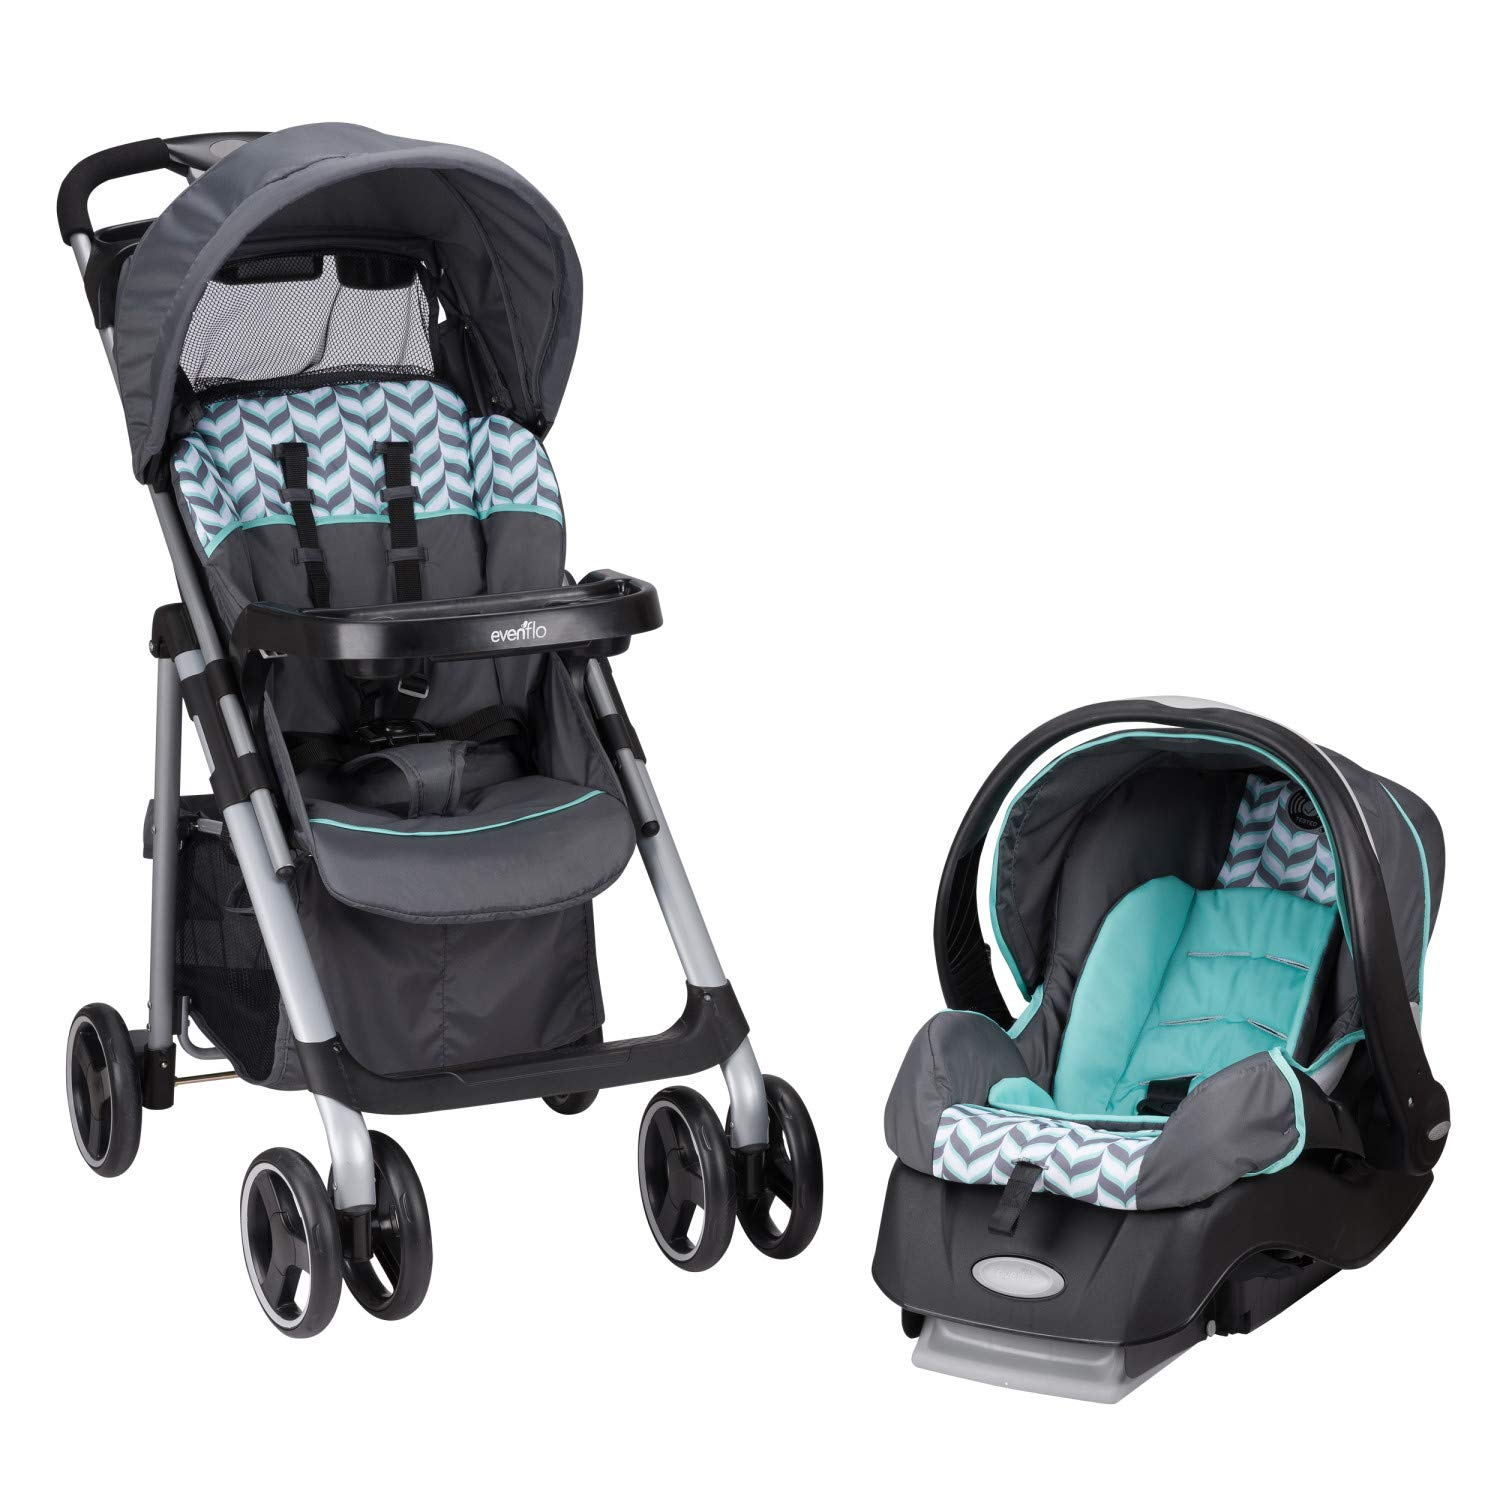 Evenflo Vive Travel System with Embrace Infant Car Seat, Spearmint Spree by Evenflo (Image #17)